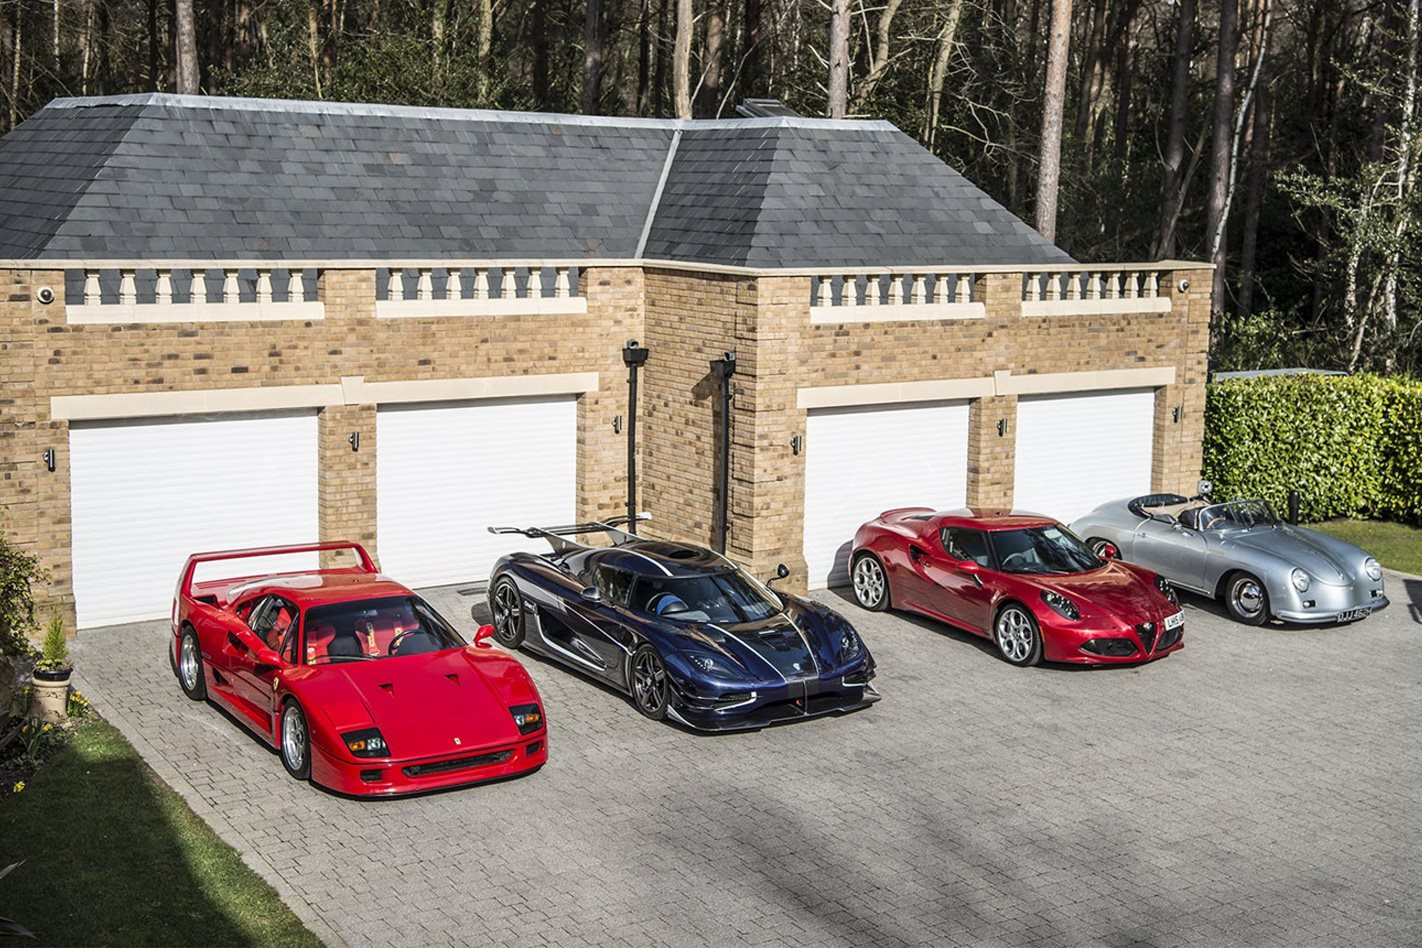 What is the ultimate three car garage for $250K?